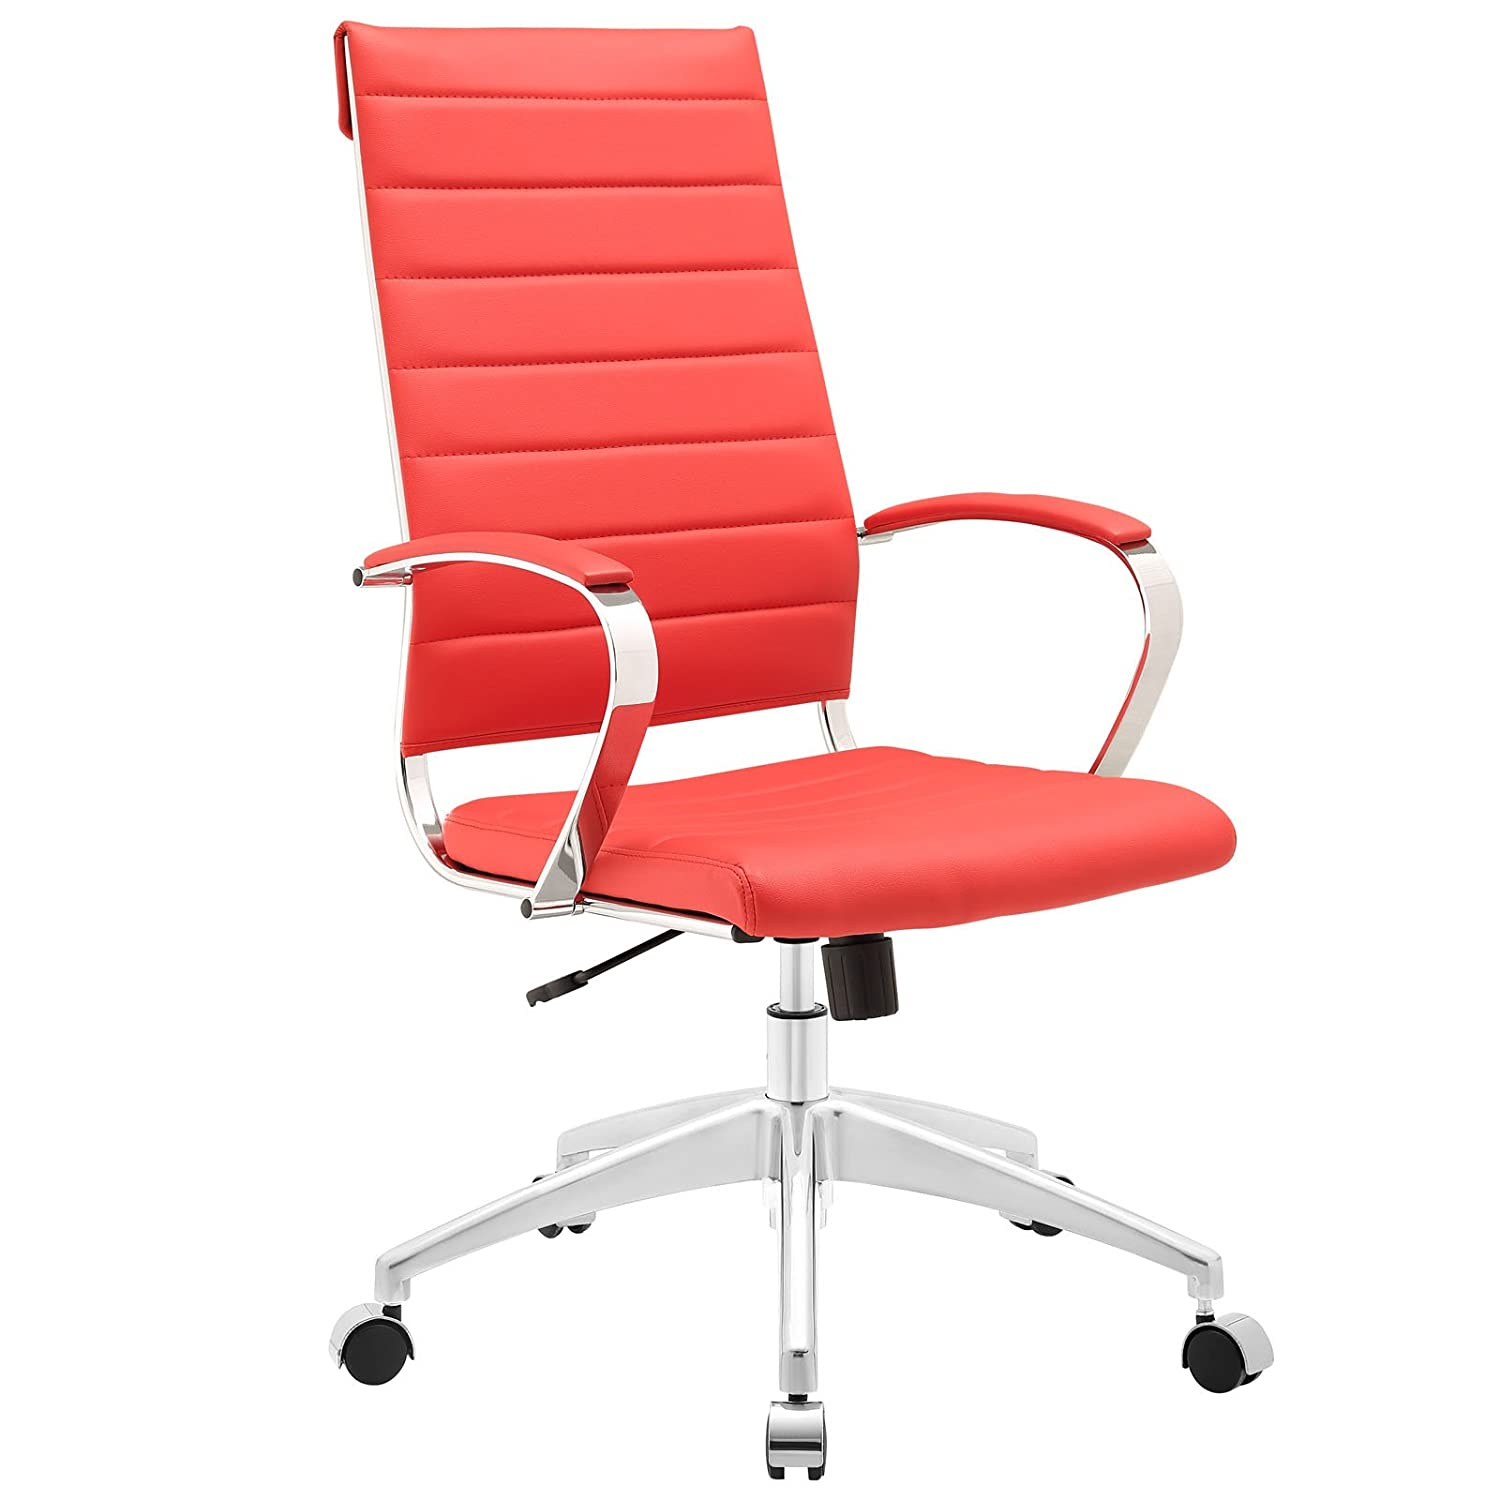 Modway Jive Ribbed High Back Tall Executive Swivel Office Chair With Arms In Red